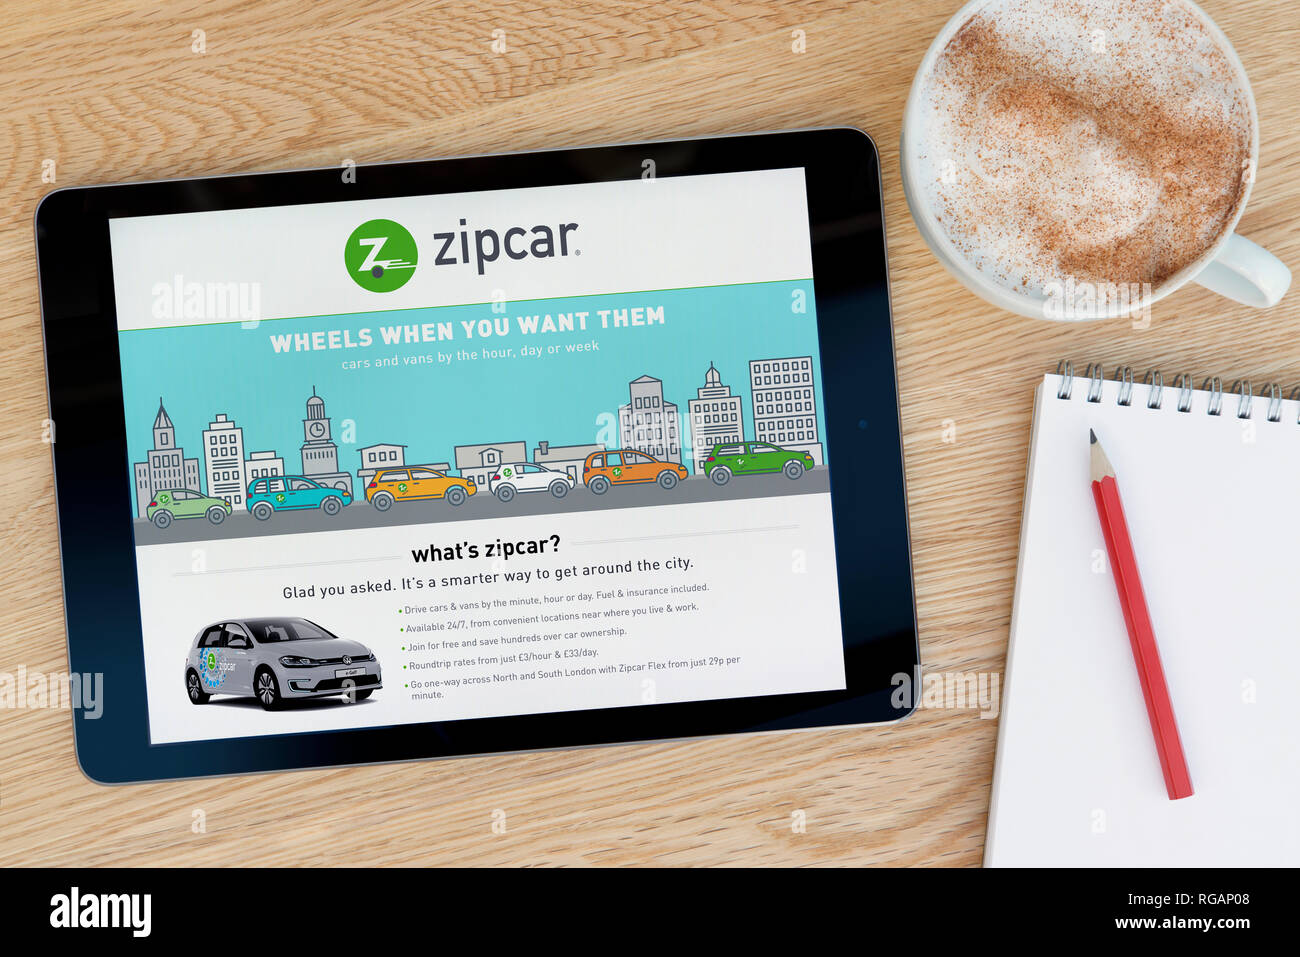 The Zipcar website features on an iPad tablet device which rests on a wooden table beside a notepad (Editorial use only). - Stock Image